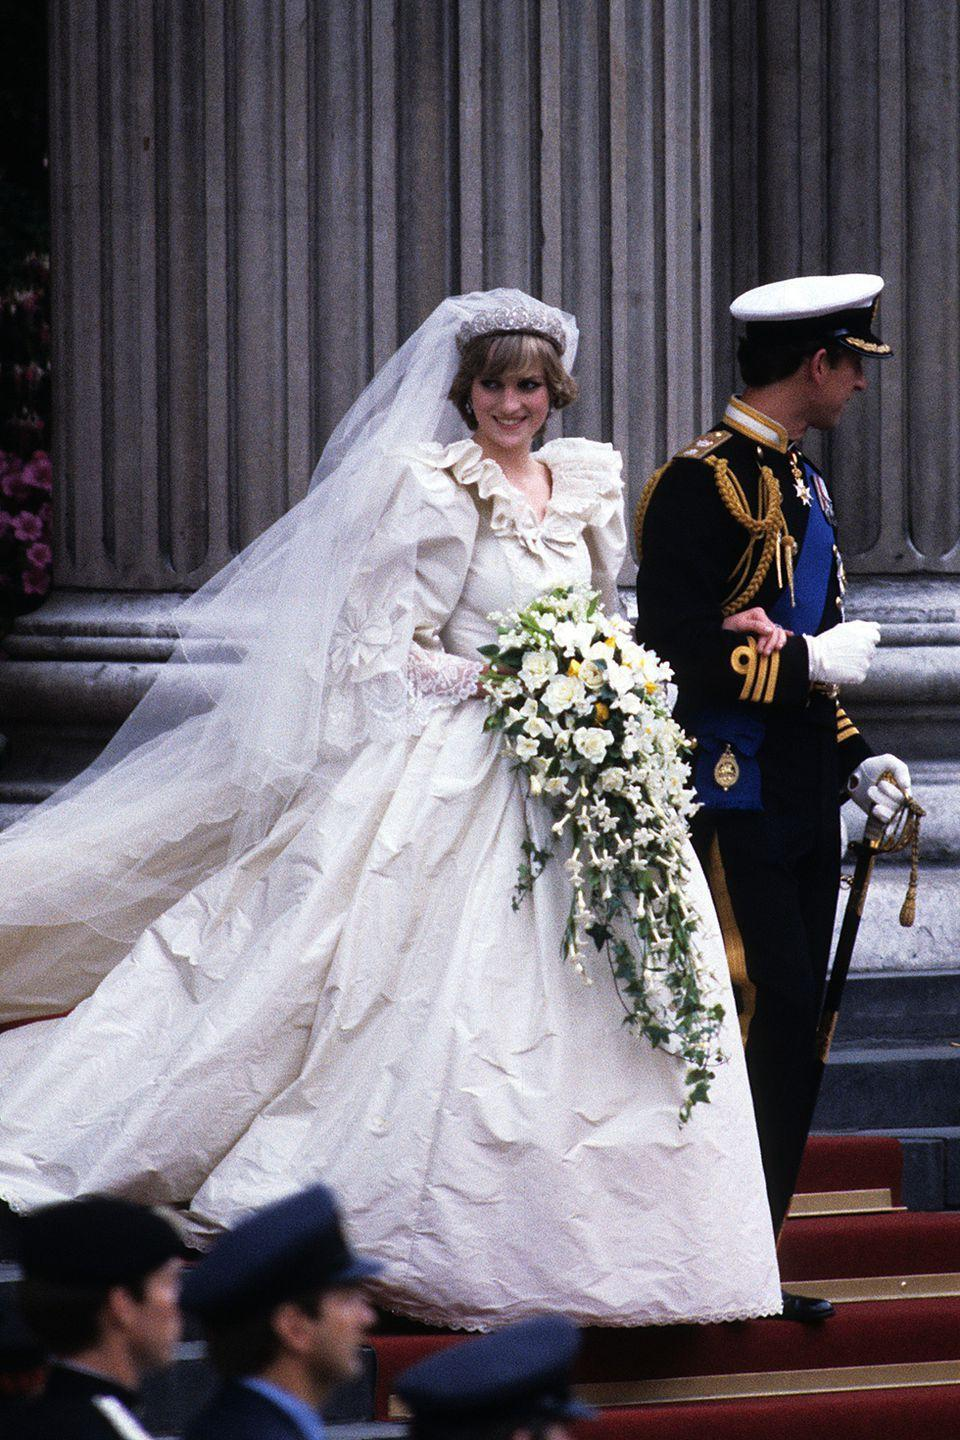 <p>The people's princess set the bar for dramatic wedding dresses when she wed Prince Charles at St Paul's Cathedral in a voluminous dress by David Emanuel. The design was so secretive that Emanuel made a second dress just in case the first one was leaked.</p>